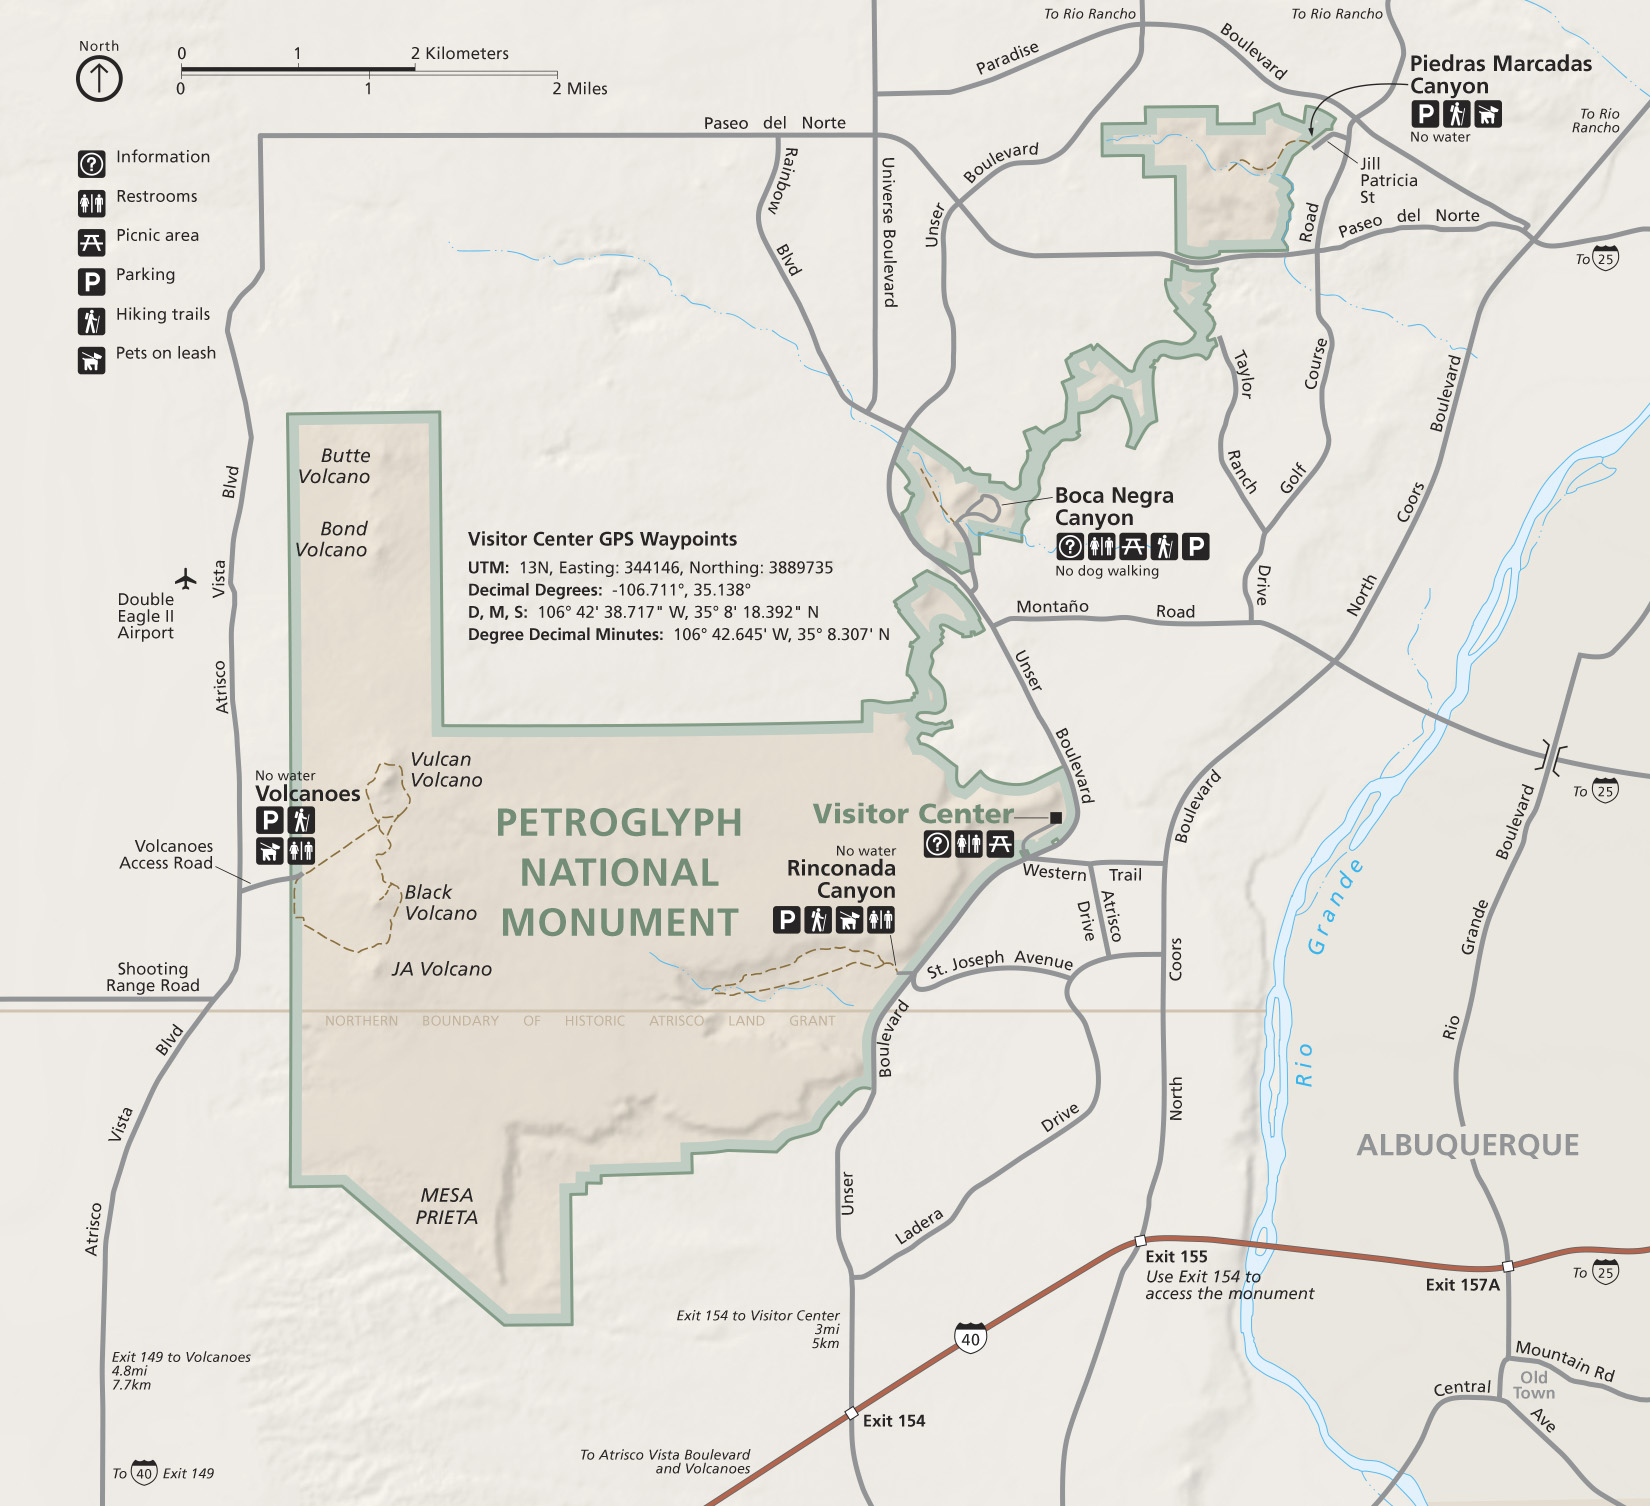 Map of the Petroglyph National Monument provided by the National Park Service